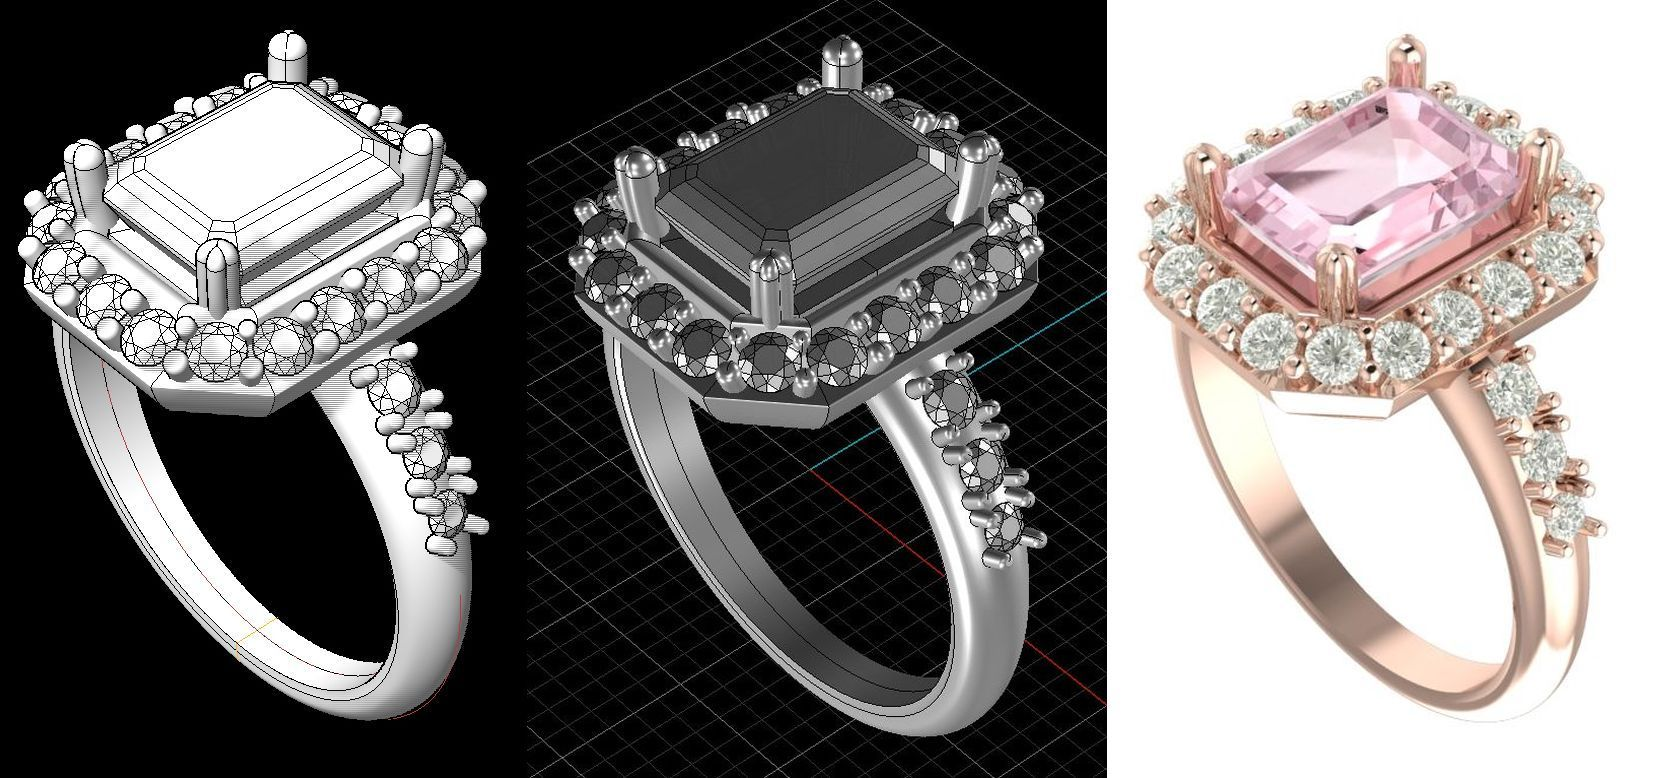 How to commission a piece of jewellery - CAD image